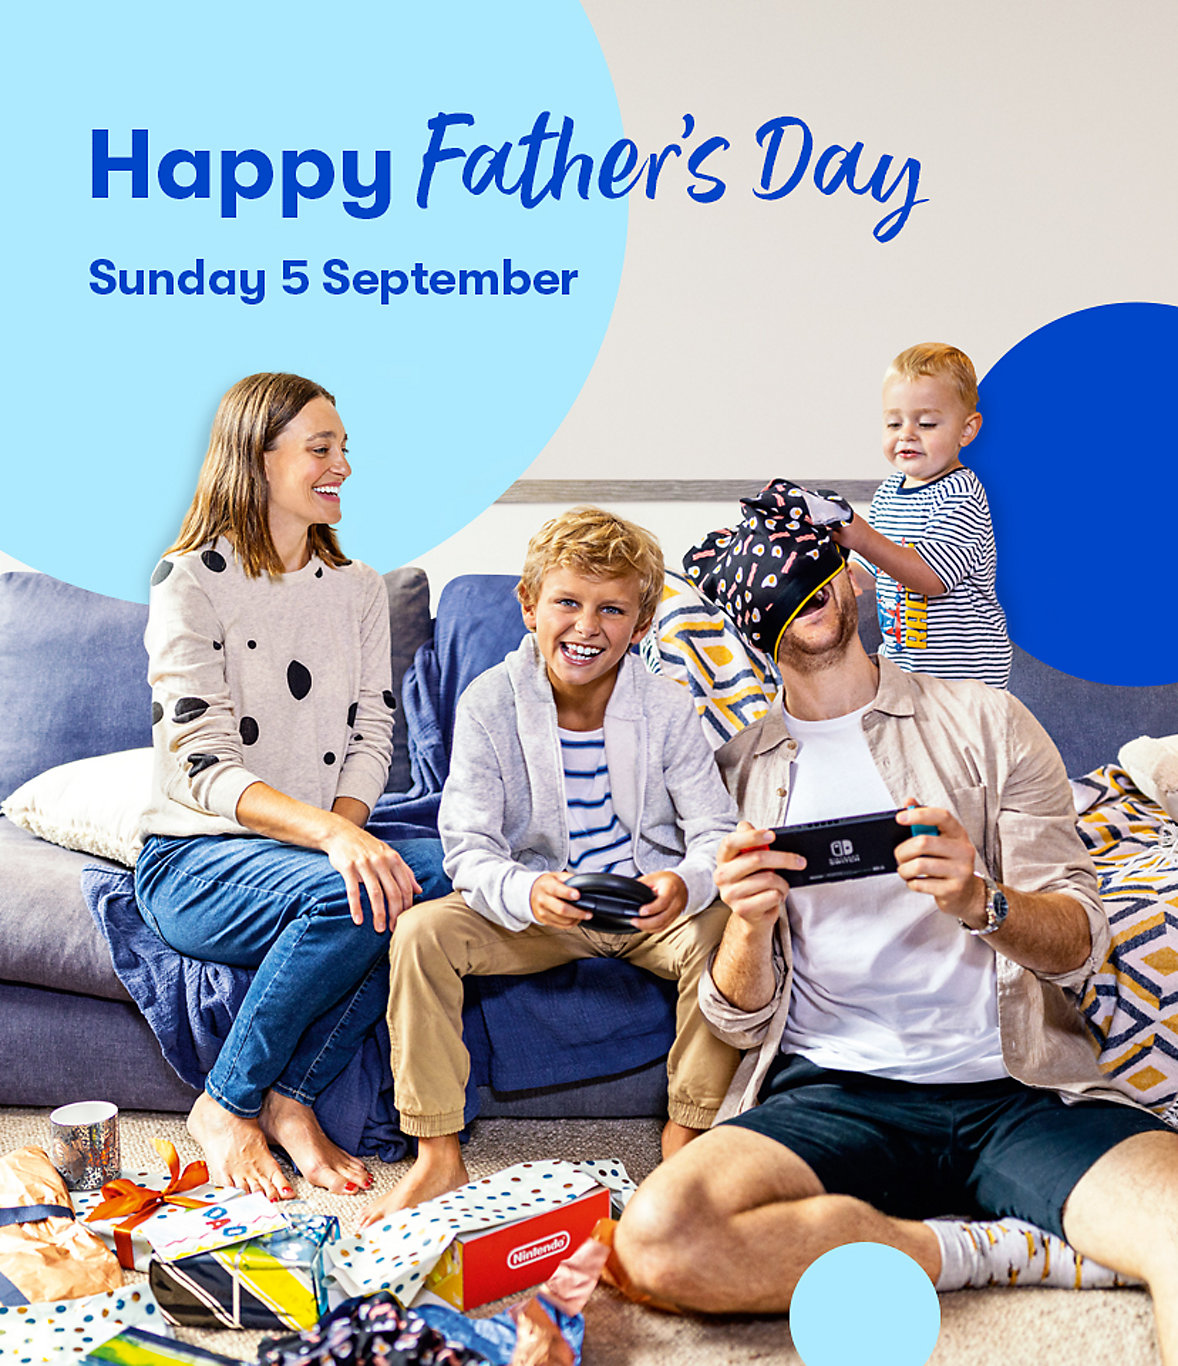 Get ready for Father's Day! Shop the best gifts for Dad ready for Sunday 5th September